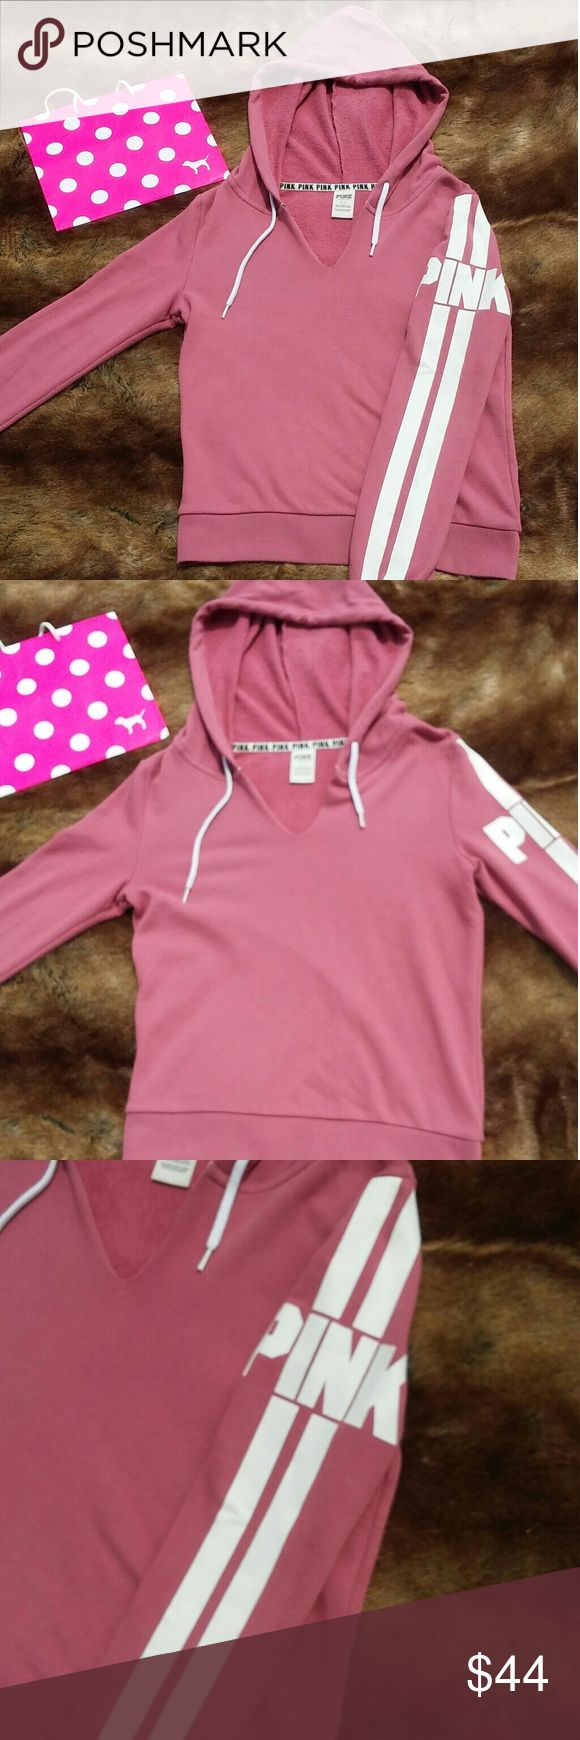 Vs PINK hoodie Victoria's Secret PINK Soft begonia split neck hooded sweatshirt pullover White stripes and logo down side of sleeve Worn and washed ONE TIME Never dried Absolutely perfect like new condition Retail $55 after tax Size small True to size CHEAPER WHEN BUNDLED WITH OTHER ITEMS IN MY CLOSET PINK Victoria's Secret Tops Sweatshirts & Hoodies